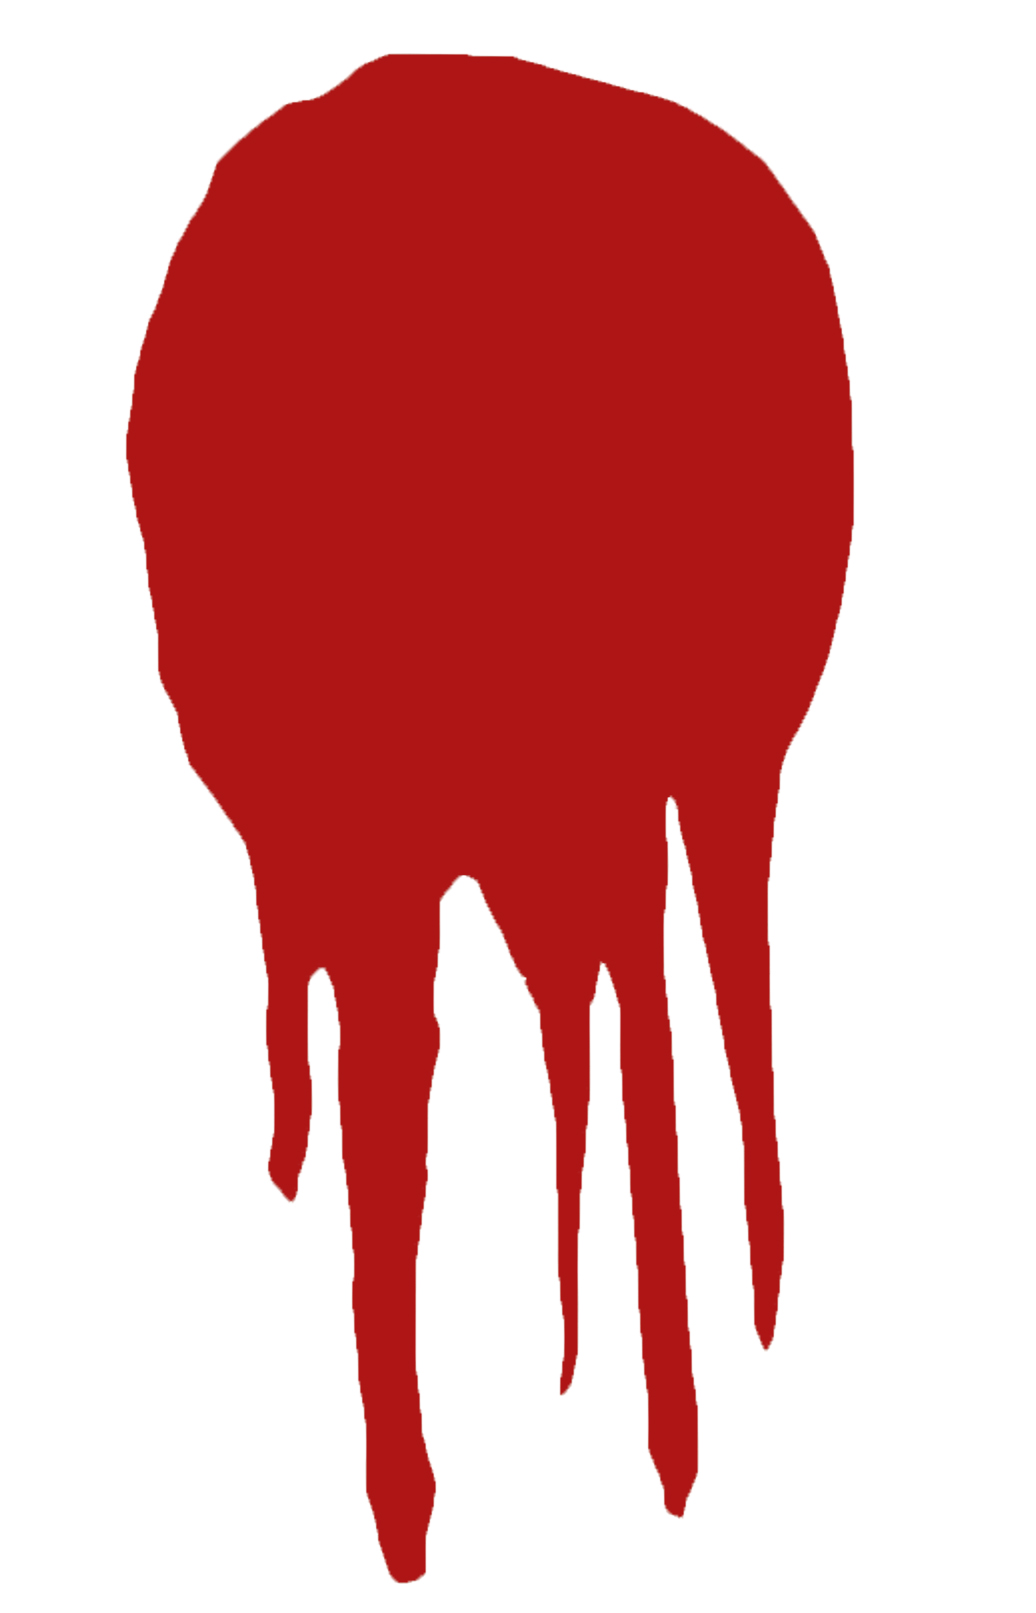 Blood clipart blood drip Art gore blood clker Blood